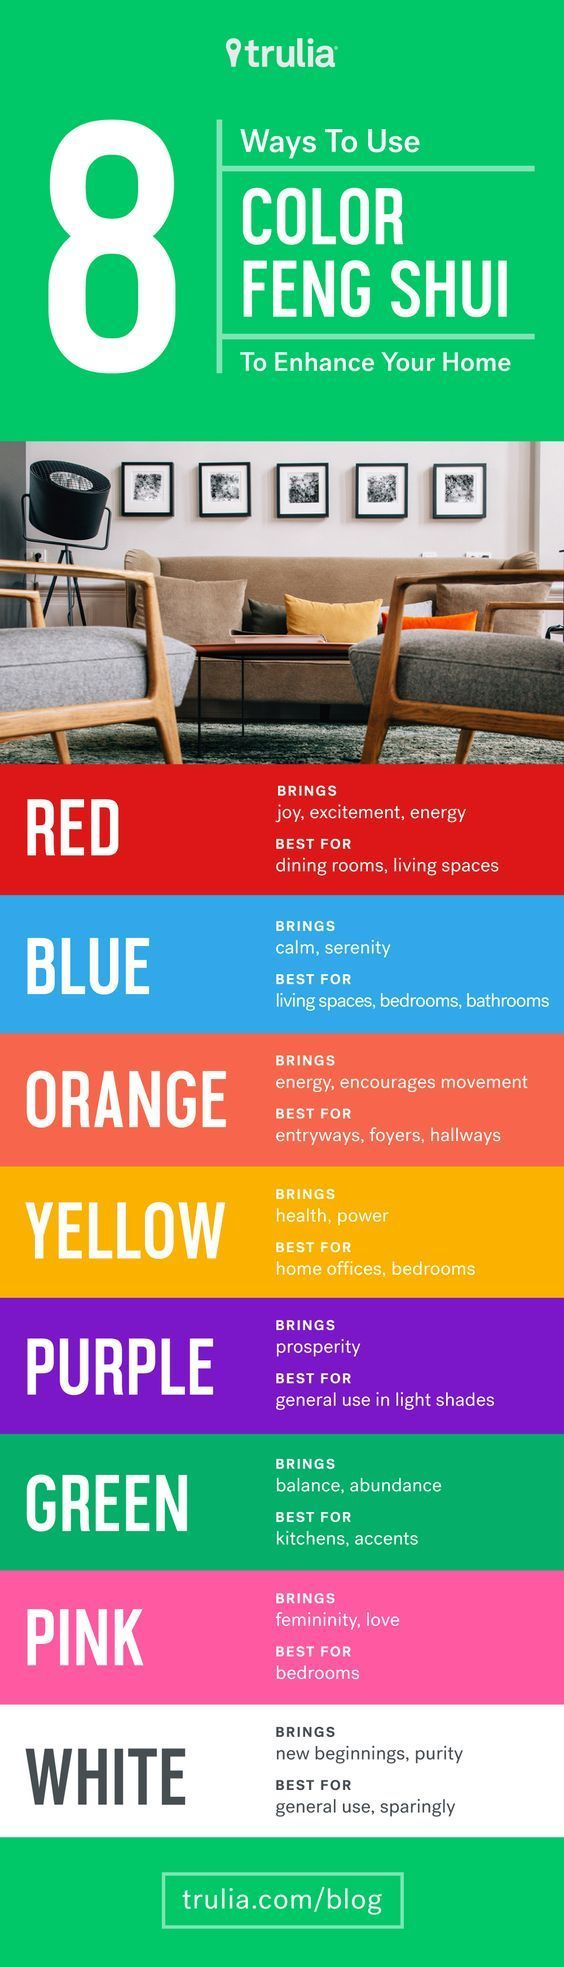 Farbgestaltung Küche Feng Shui 8 Reasons To Use Color Feng Shui To Enhance Your Home ...